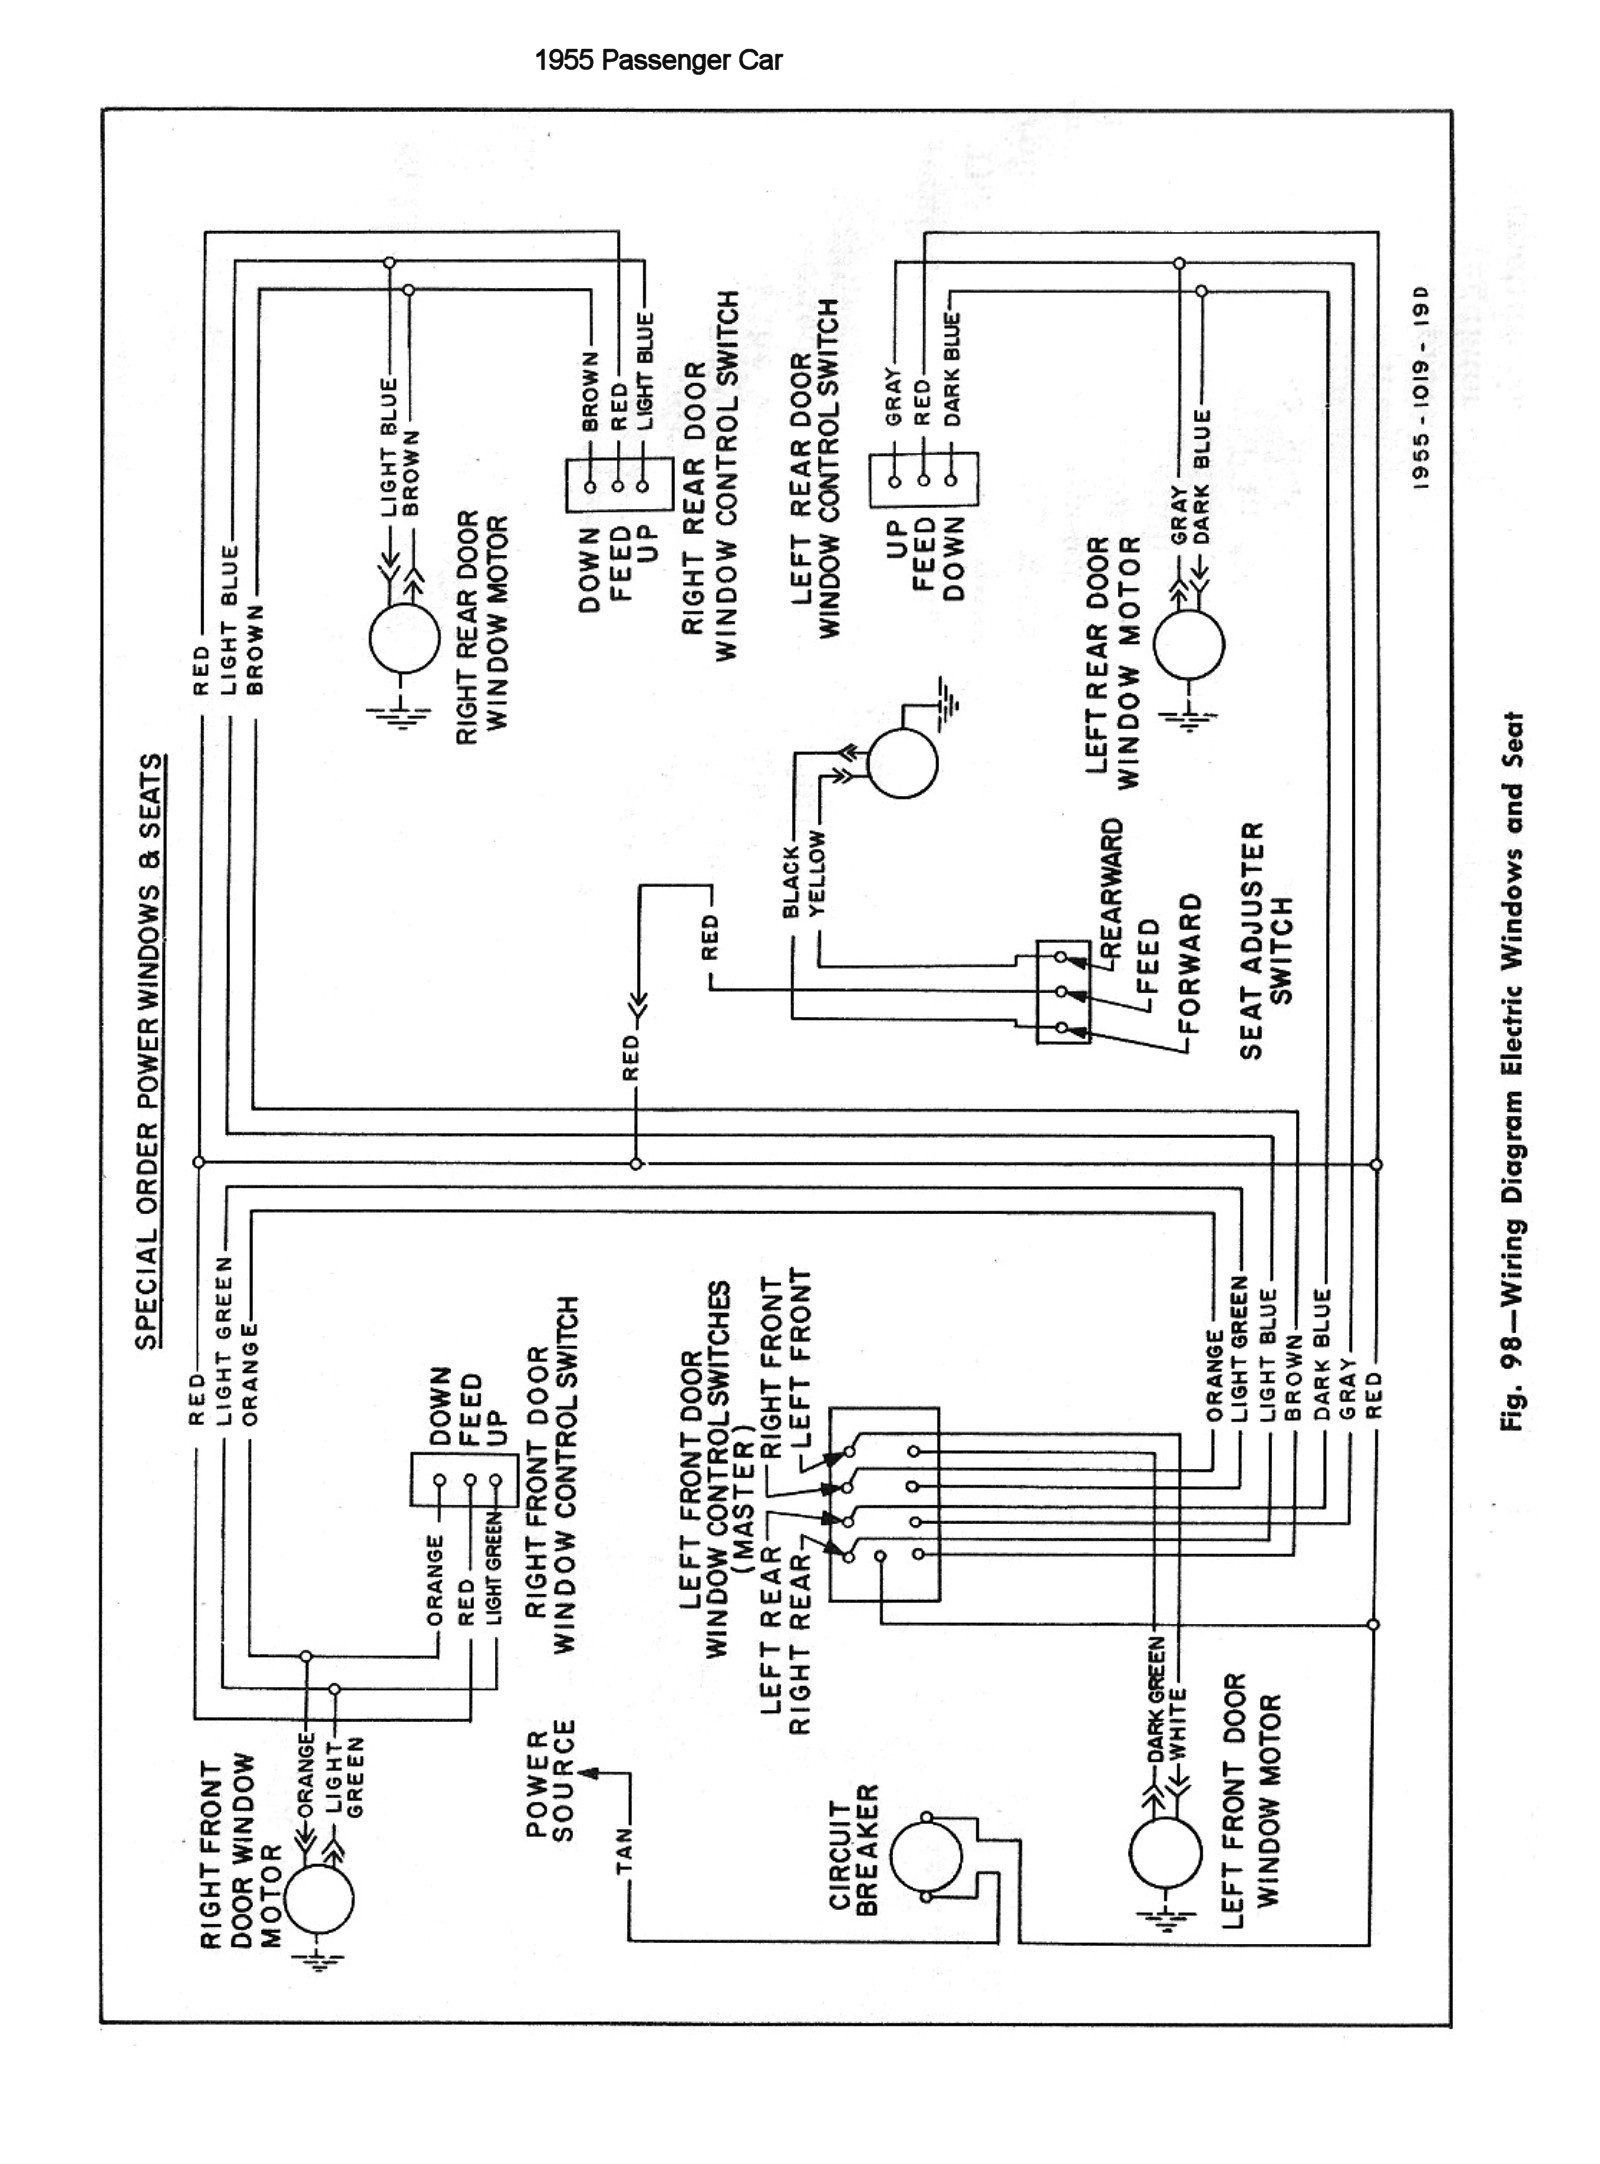 hight resolution of 1982 camaro turn signal wiring diagram wiring library rh 57 icse cloud09 org 1980 camaro wiring